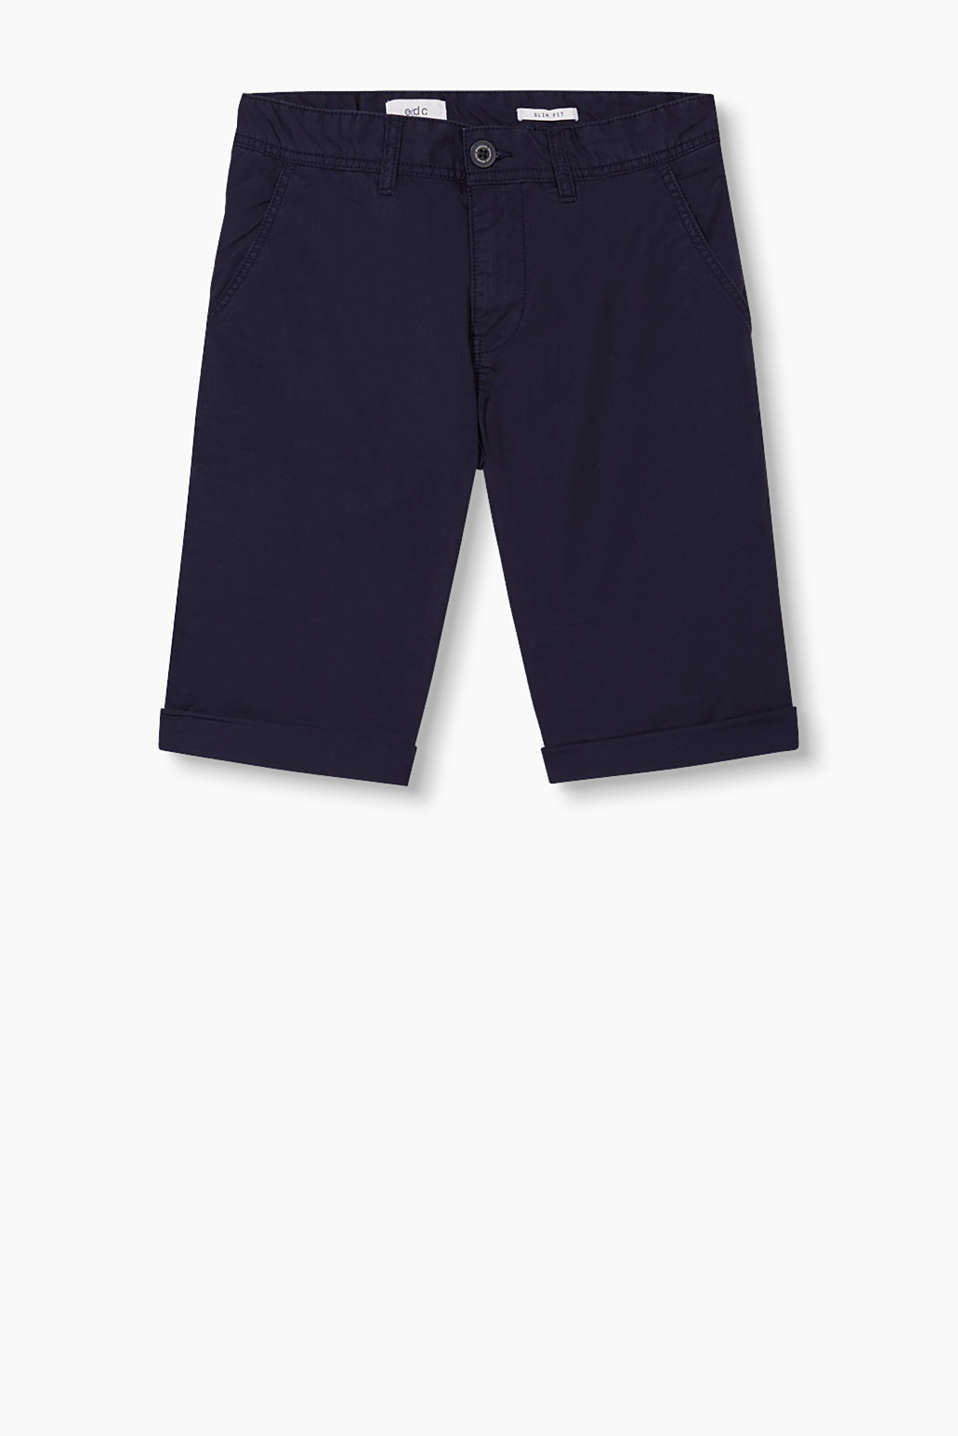 Chino style Bermudas in garment-washed cotton twill